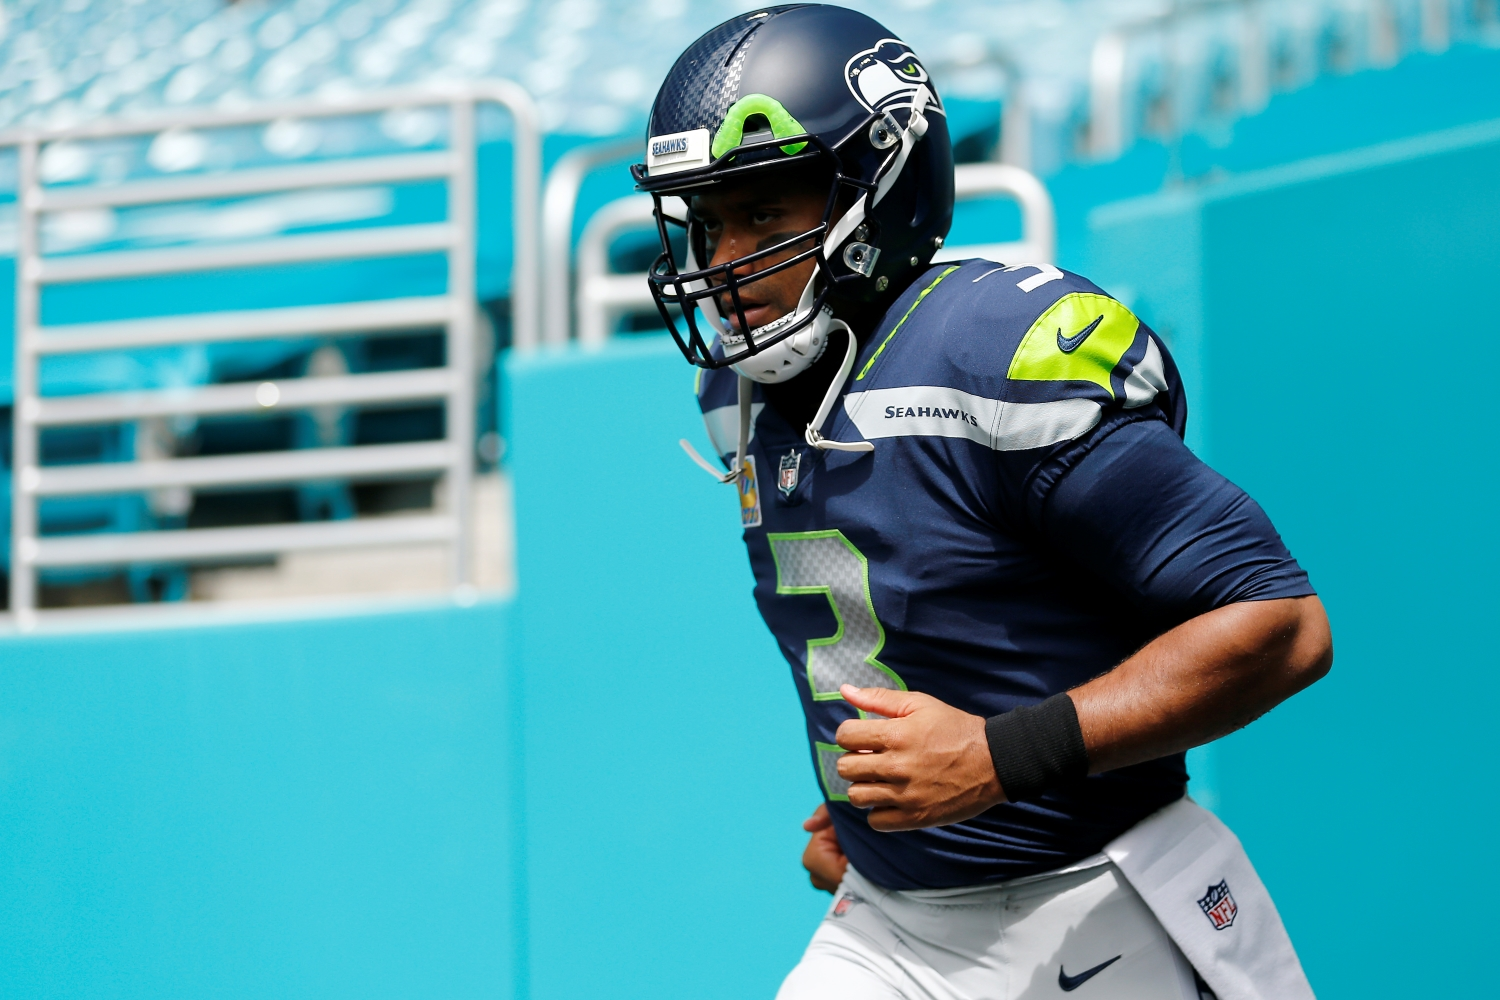 Russell Wilson of the Seattle Seahawks takes the field prior to the game against the Miami Dolphins.